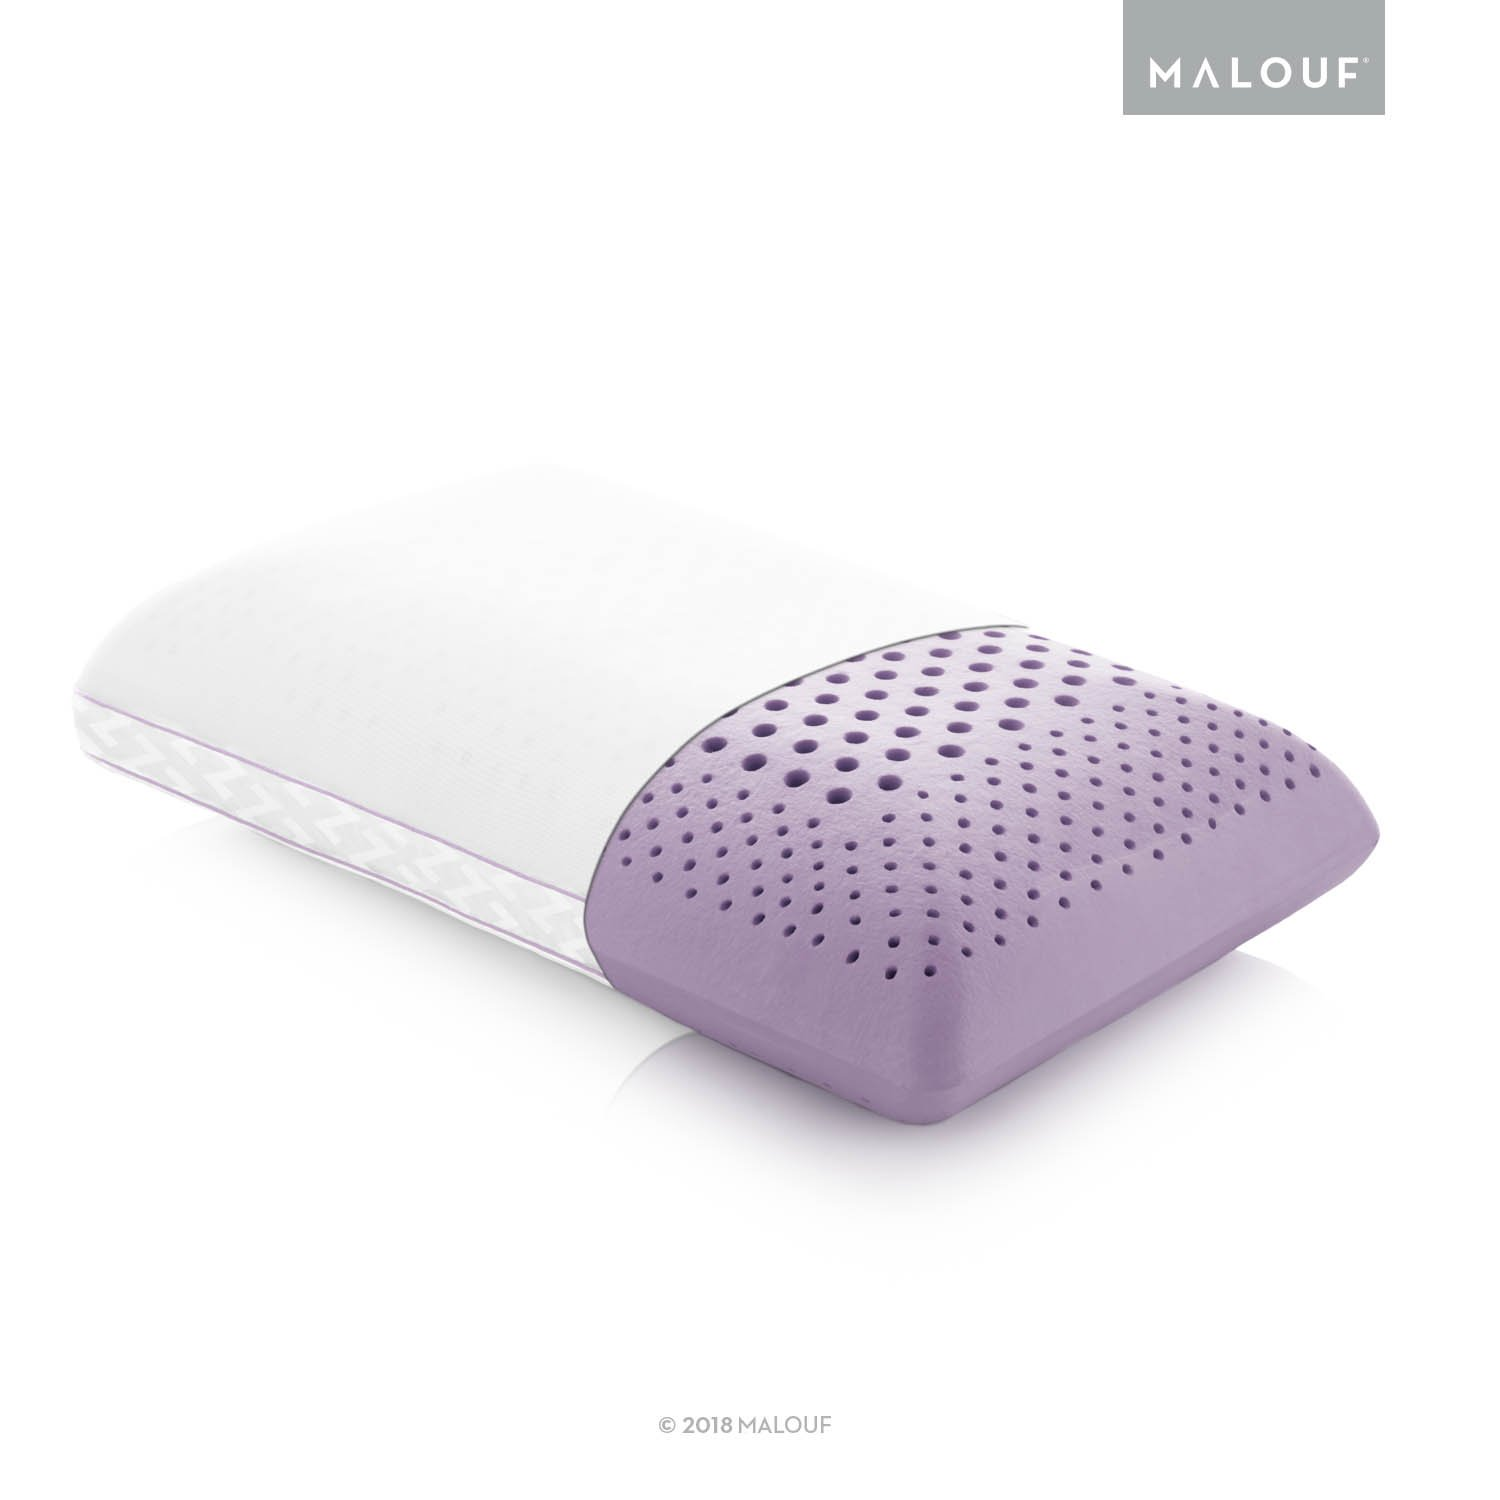 Z Zoned ACTIVEDOUGH Pillow Infused with All Natural Lavender Oil - Feels Like Blend of Latex and Memory Foam - Mid Loft - King